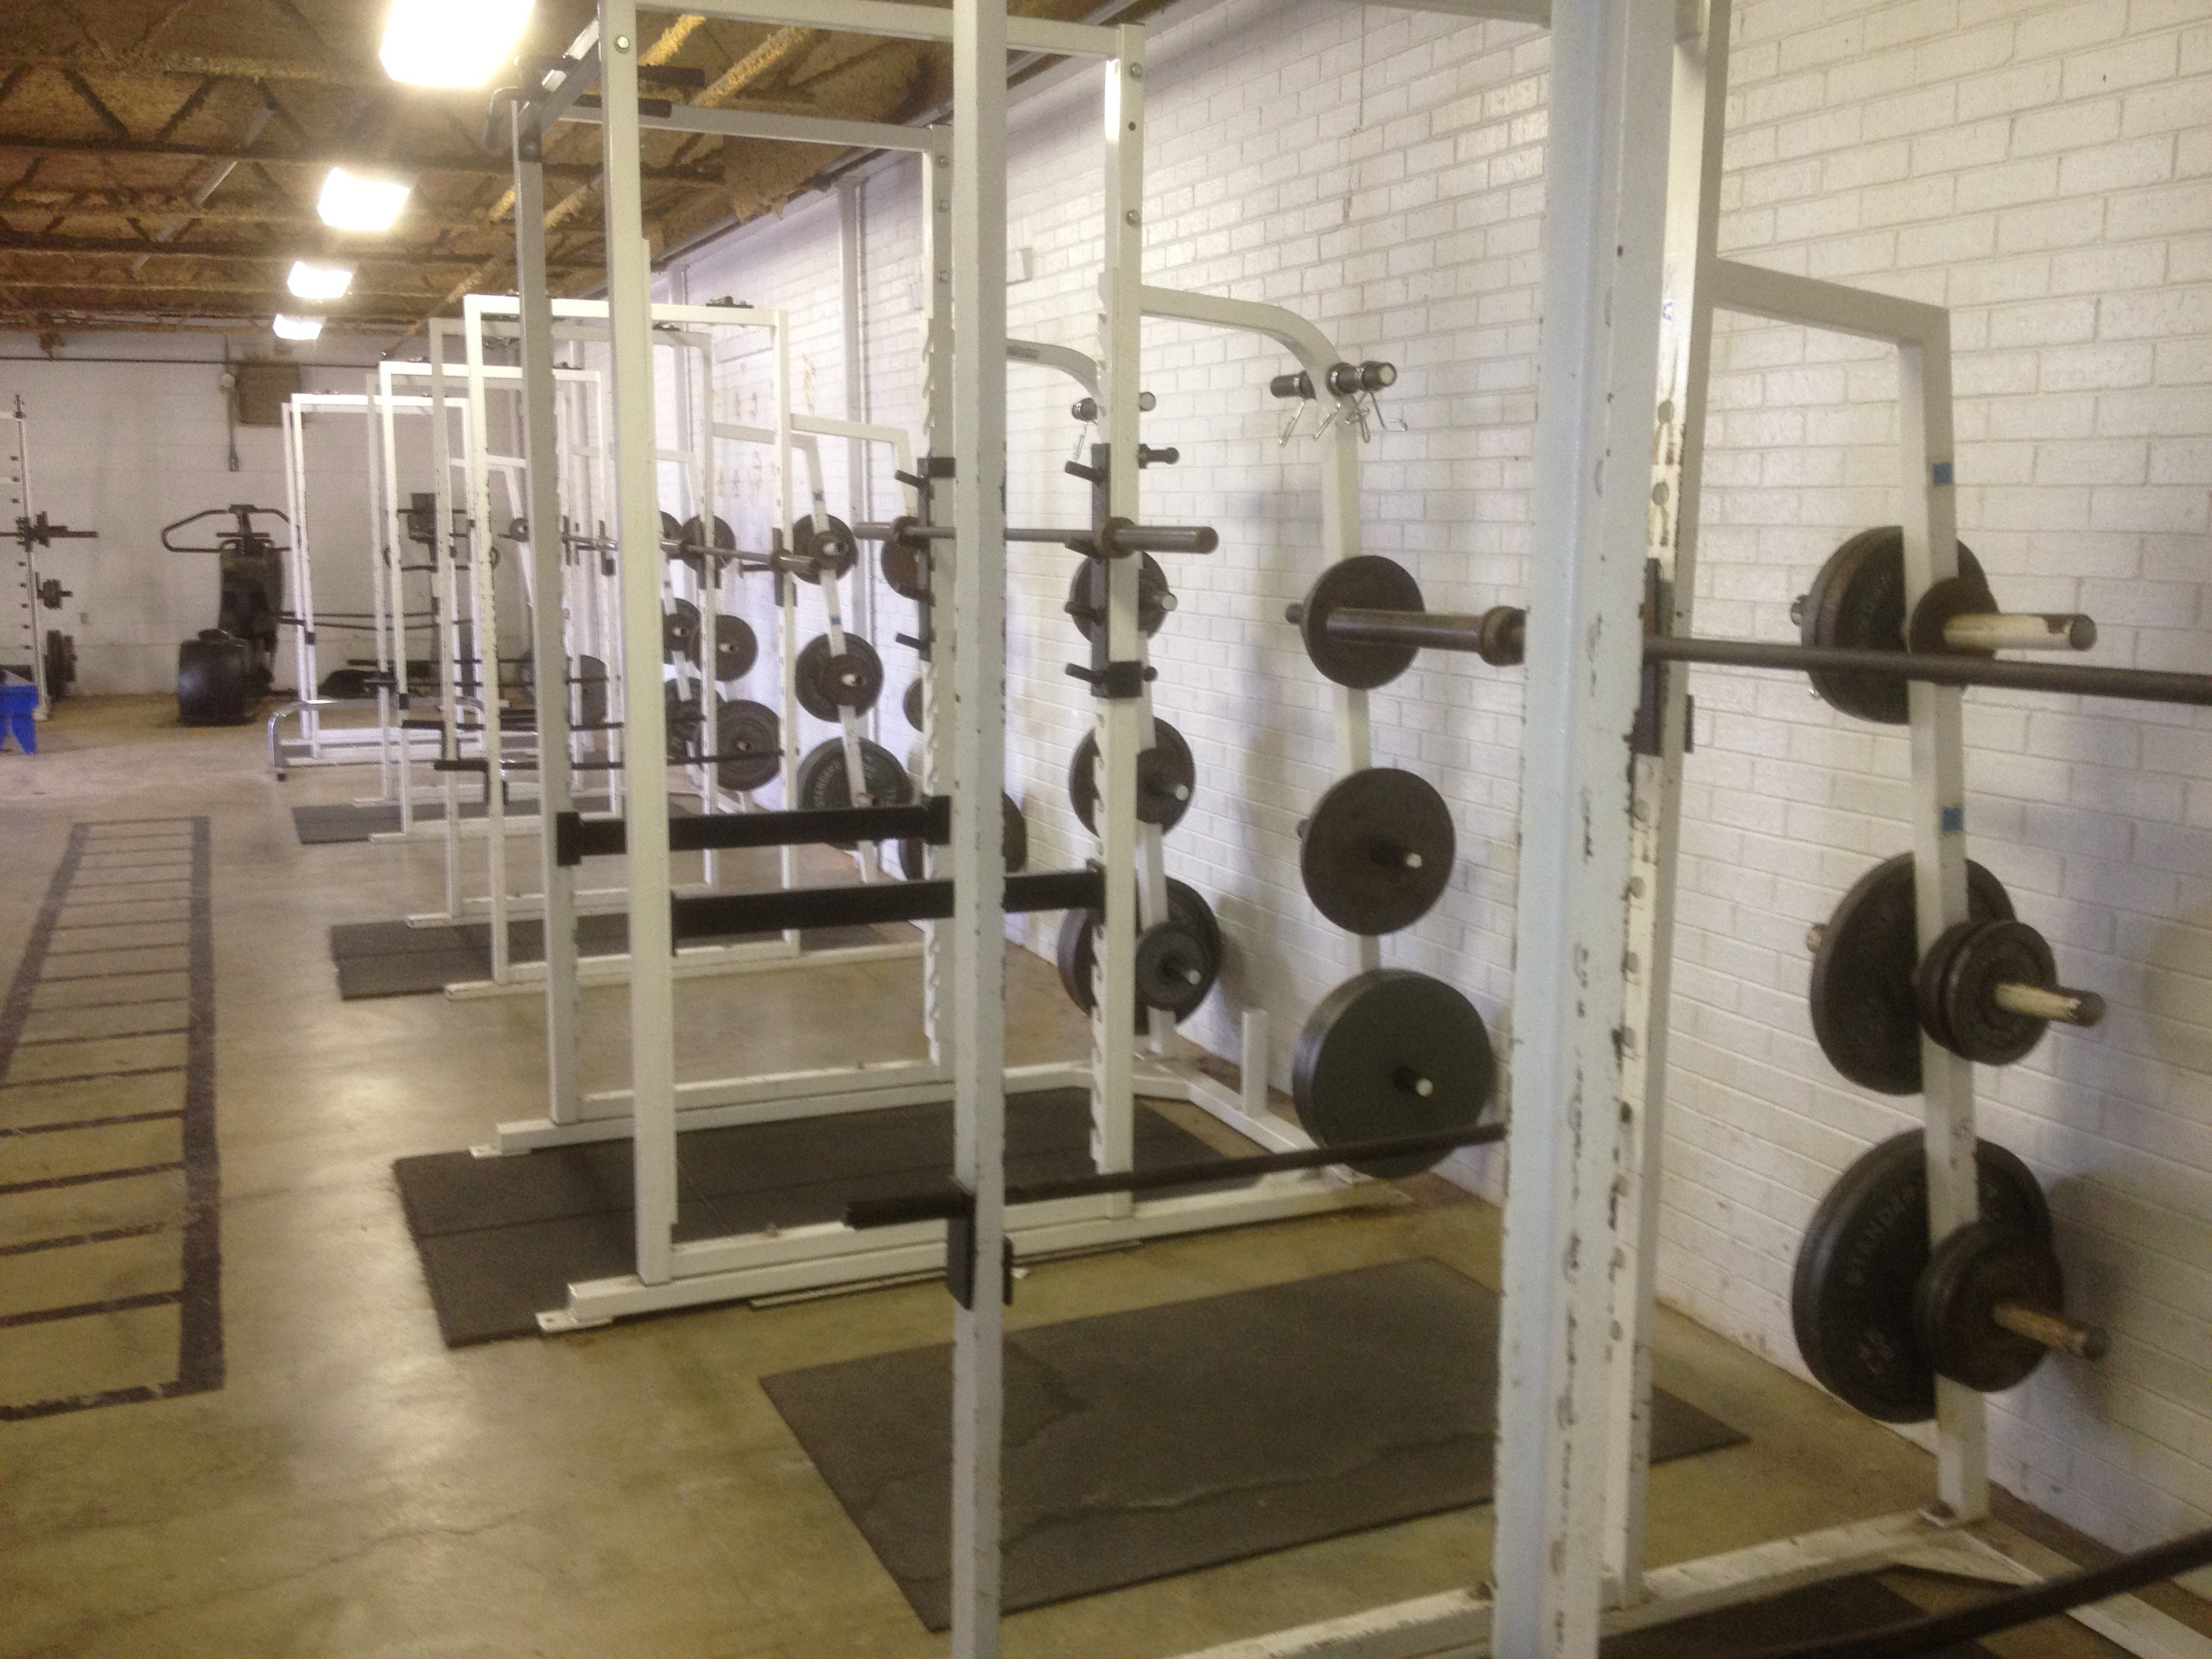 weight-room_180124_171259.JPG#asset:1920